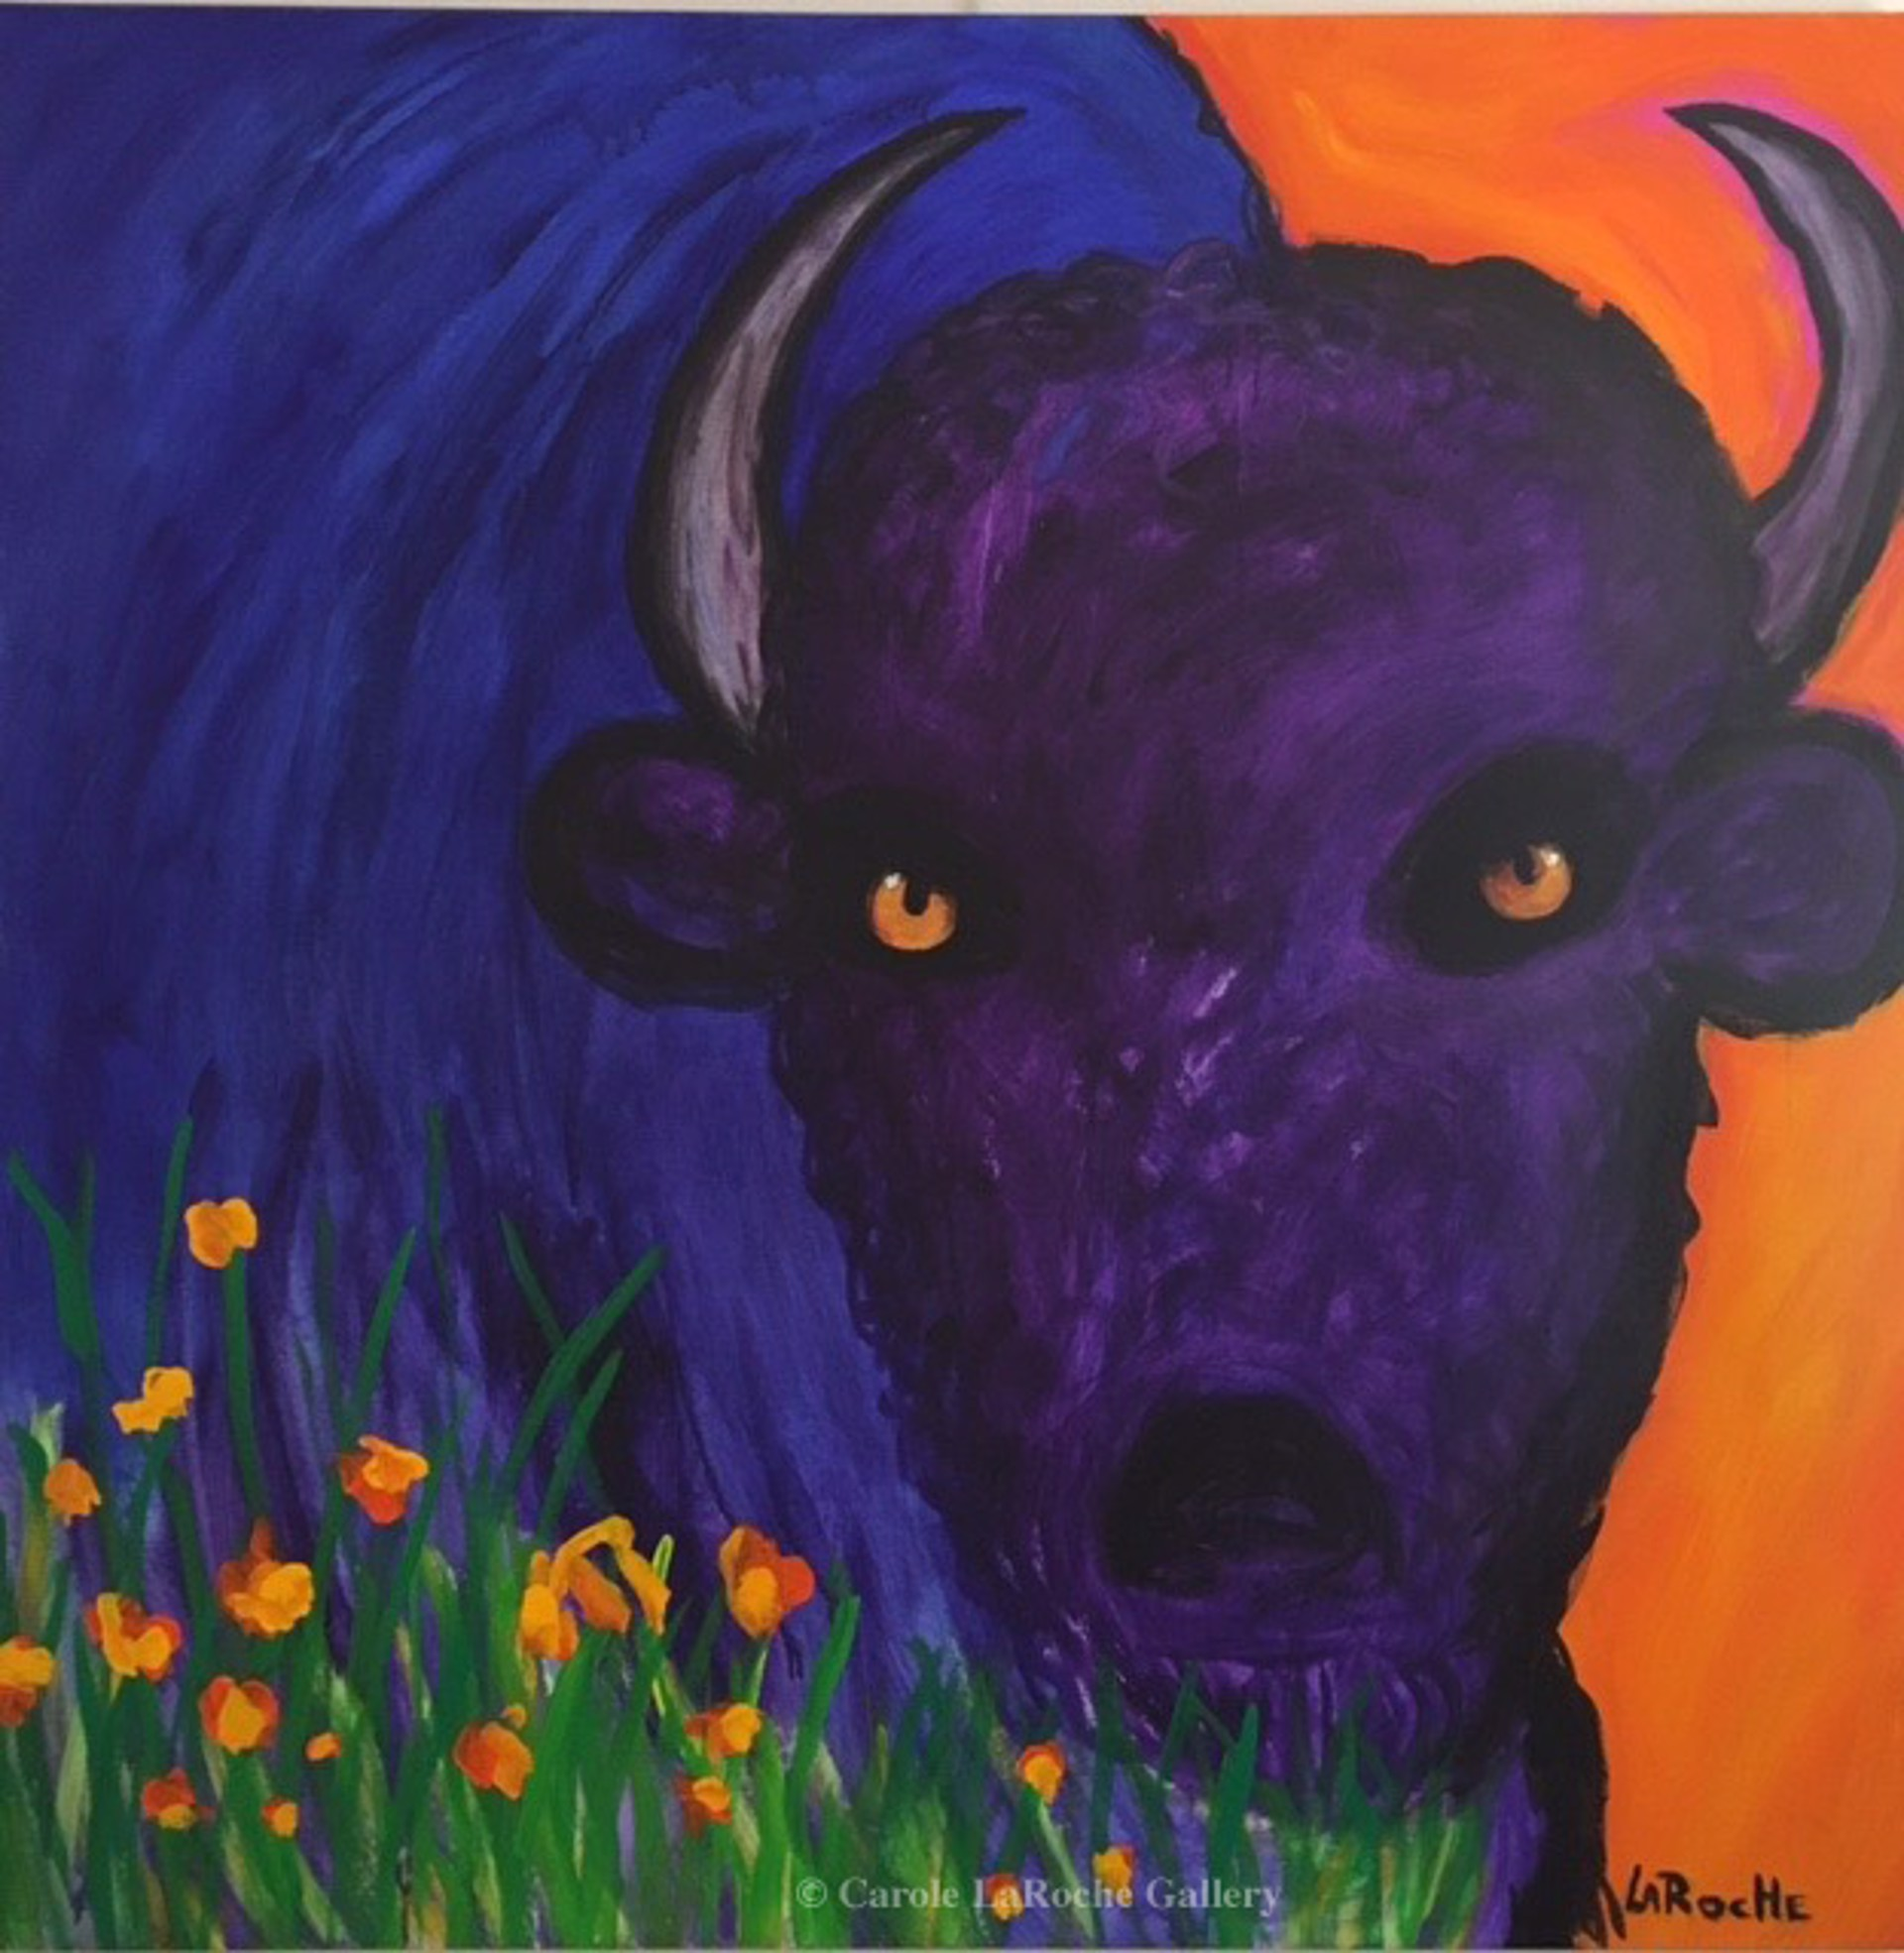 ORANGE SKY / BLUE BUFFALO by Carole LaRoche